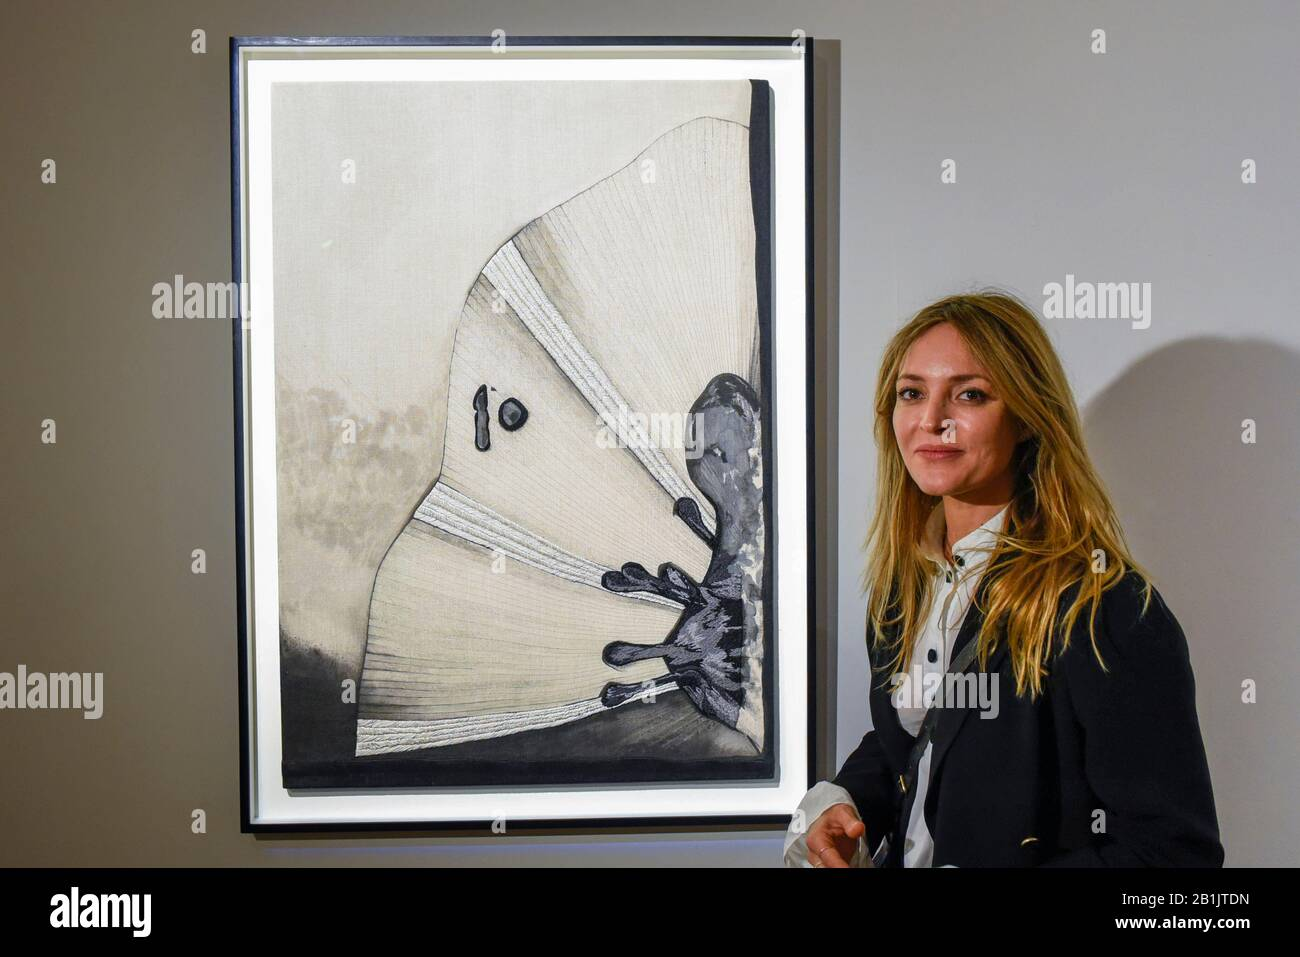 """London, UK.  26 February 2020. Artist Carolina Mazzolari poses with her work called """"Void"""", 2019 (Starting price GBP3,000). Preview of """"Human Touch"""", an exhibition of one-of-a-kind artworks by international contemporary artists in collaborations with stitchers in British prisons.  In association with the charity Fine Cell Work, the artworks are on show at Sotheby's New Bond Street 26 February to 3 March 2020.  Credit: Stephen Chung / Alamy Live News Stock Photo"""